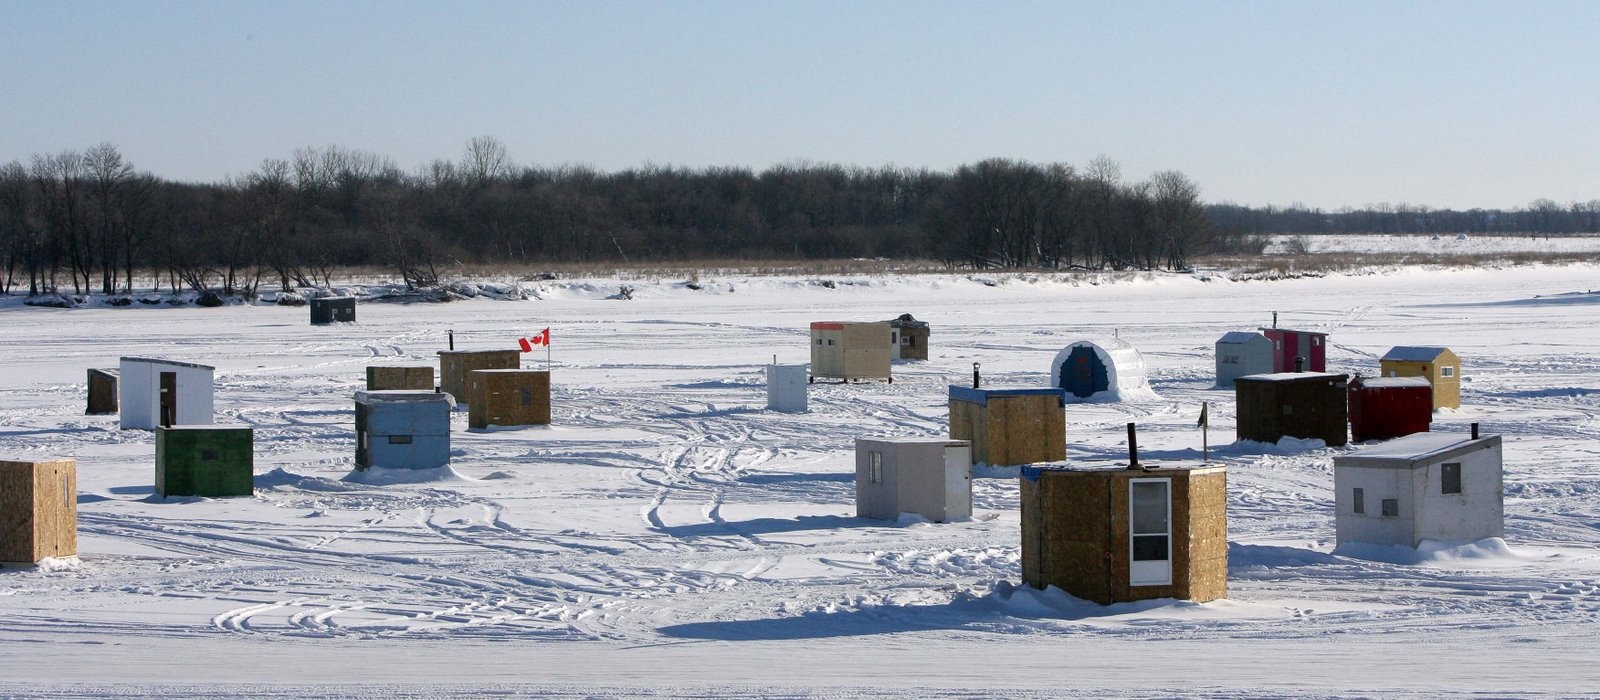 EVENT: 2013 NYS Ice Fishing Pro-Am Tournament – February 15-17, 2013